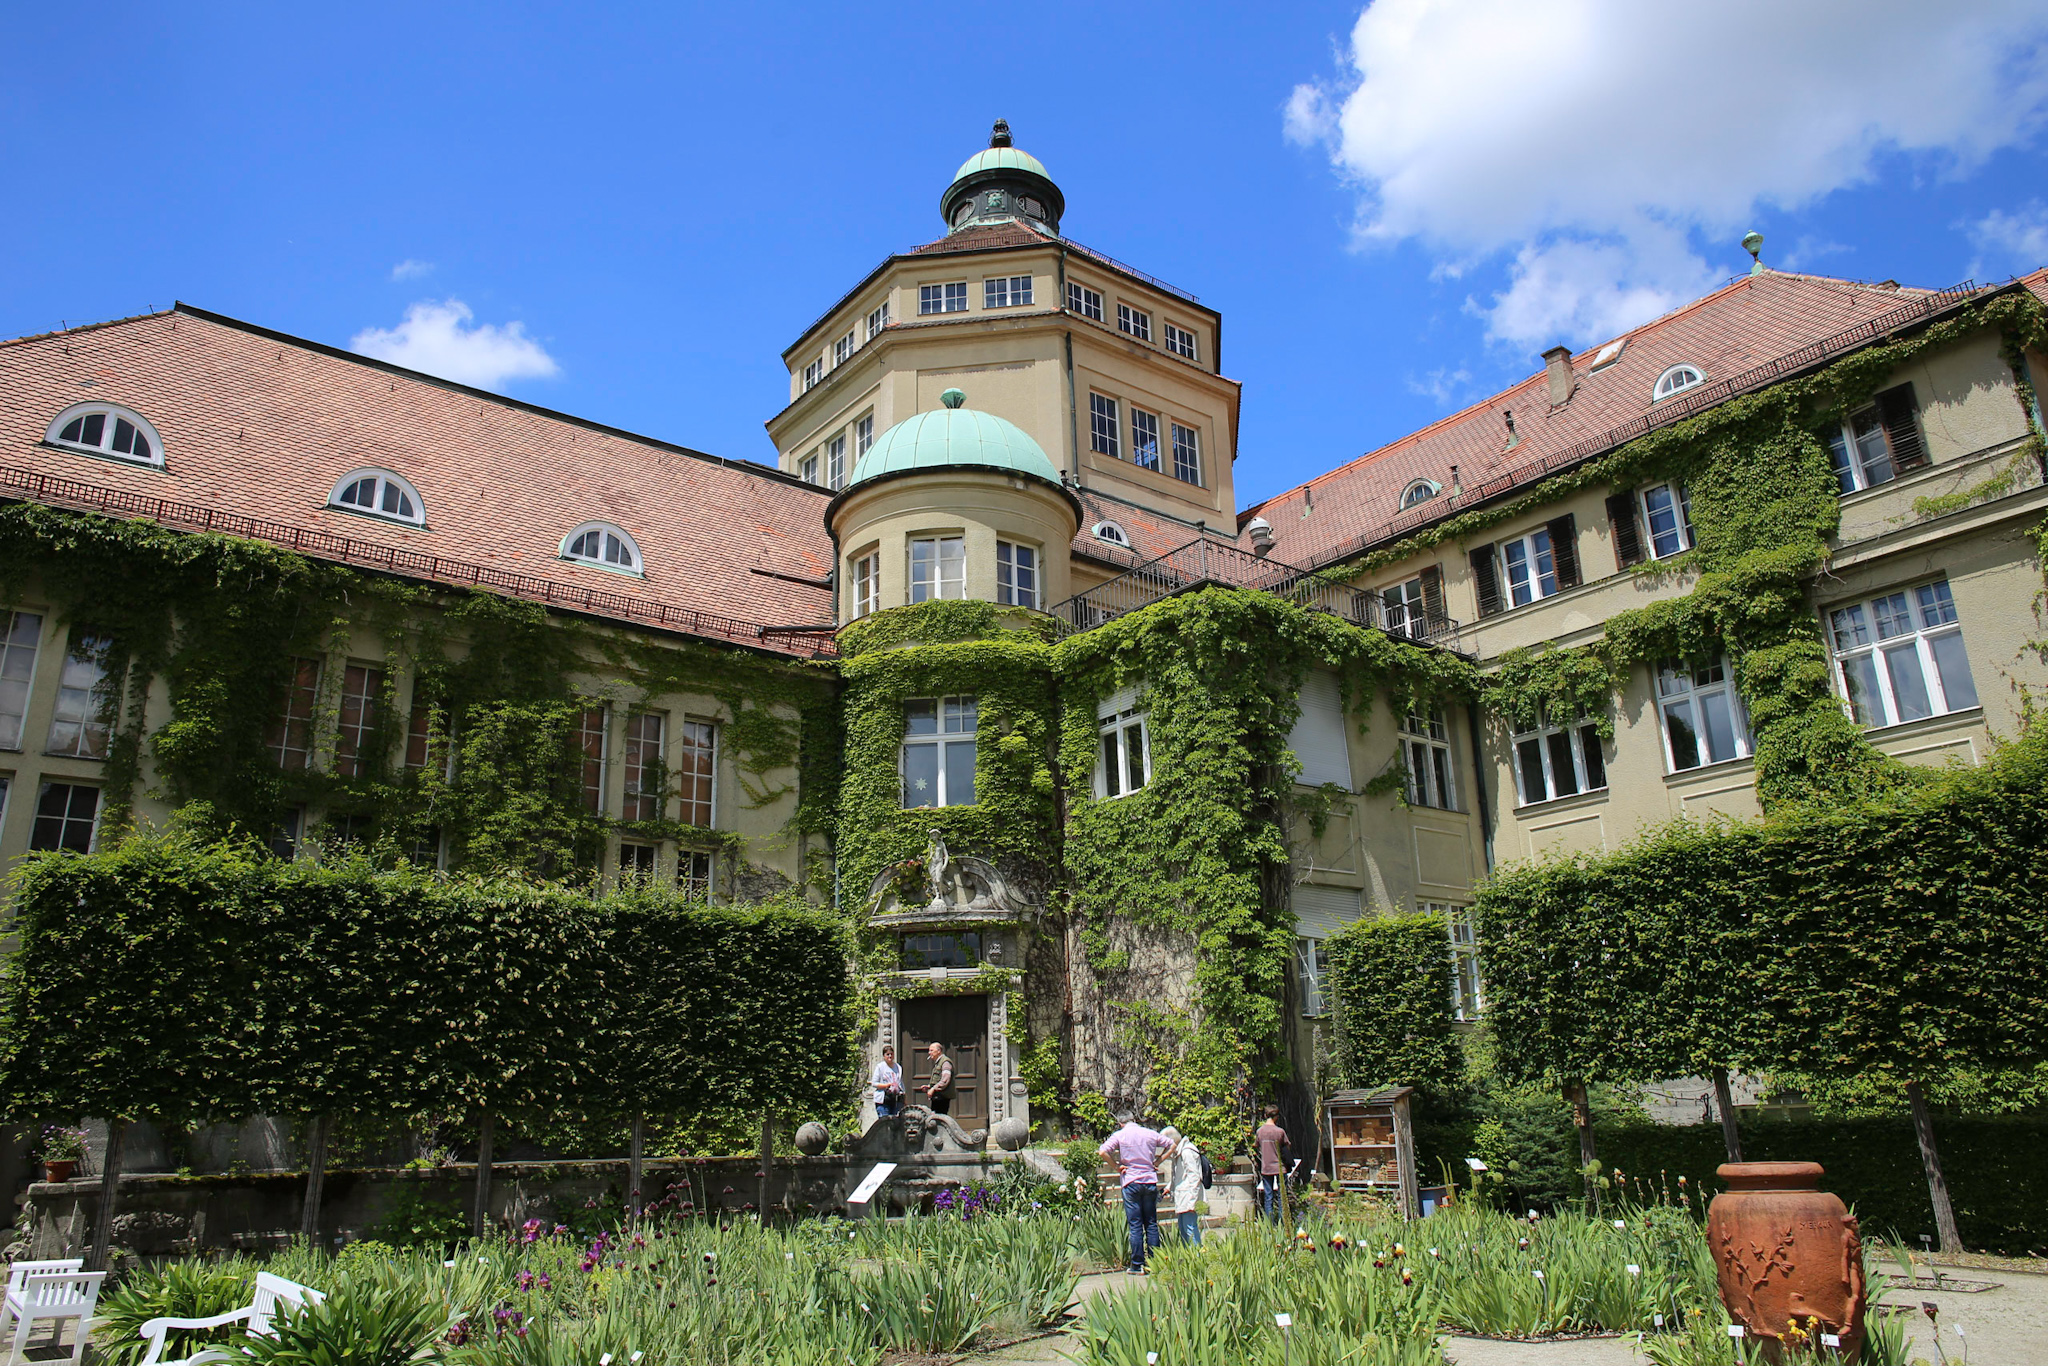 Botanical Garden, Nymphenburg, Munich